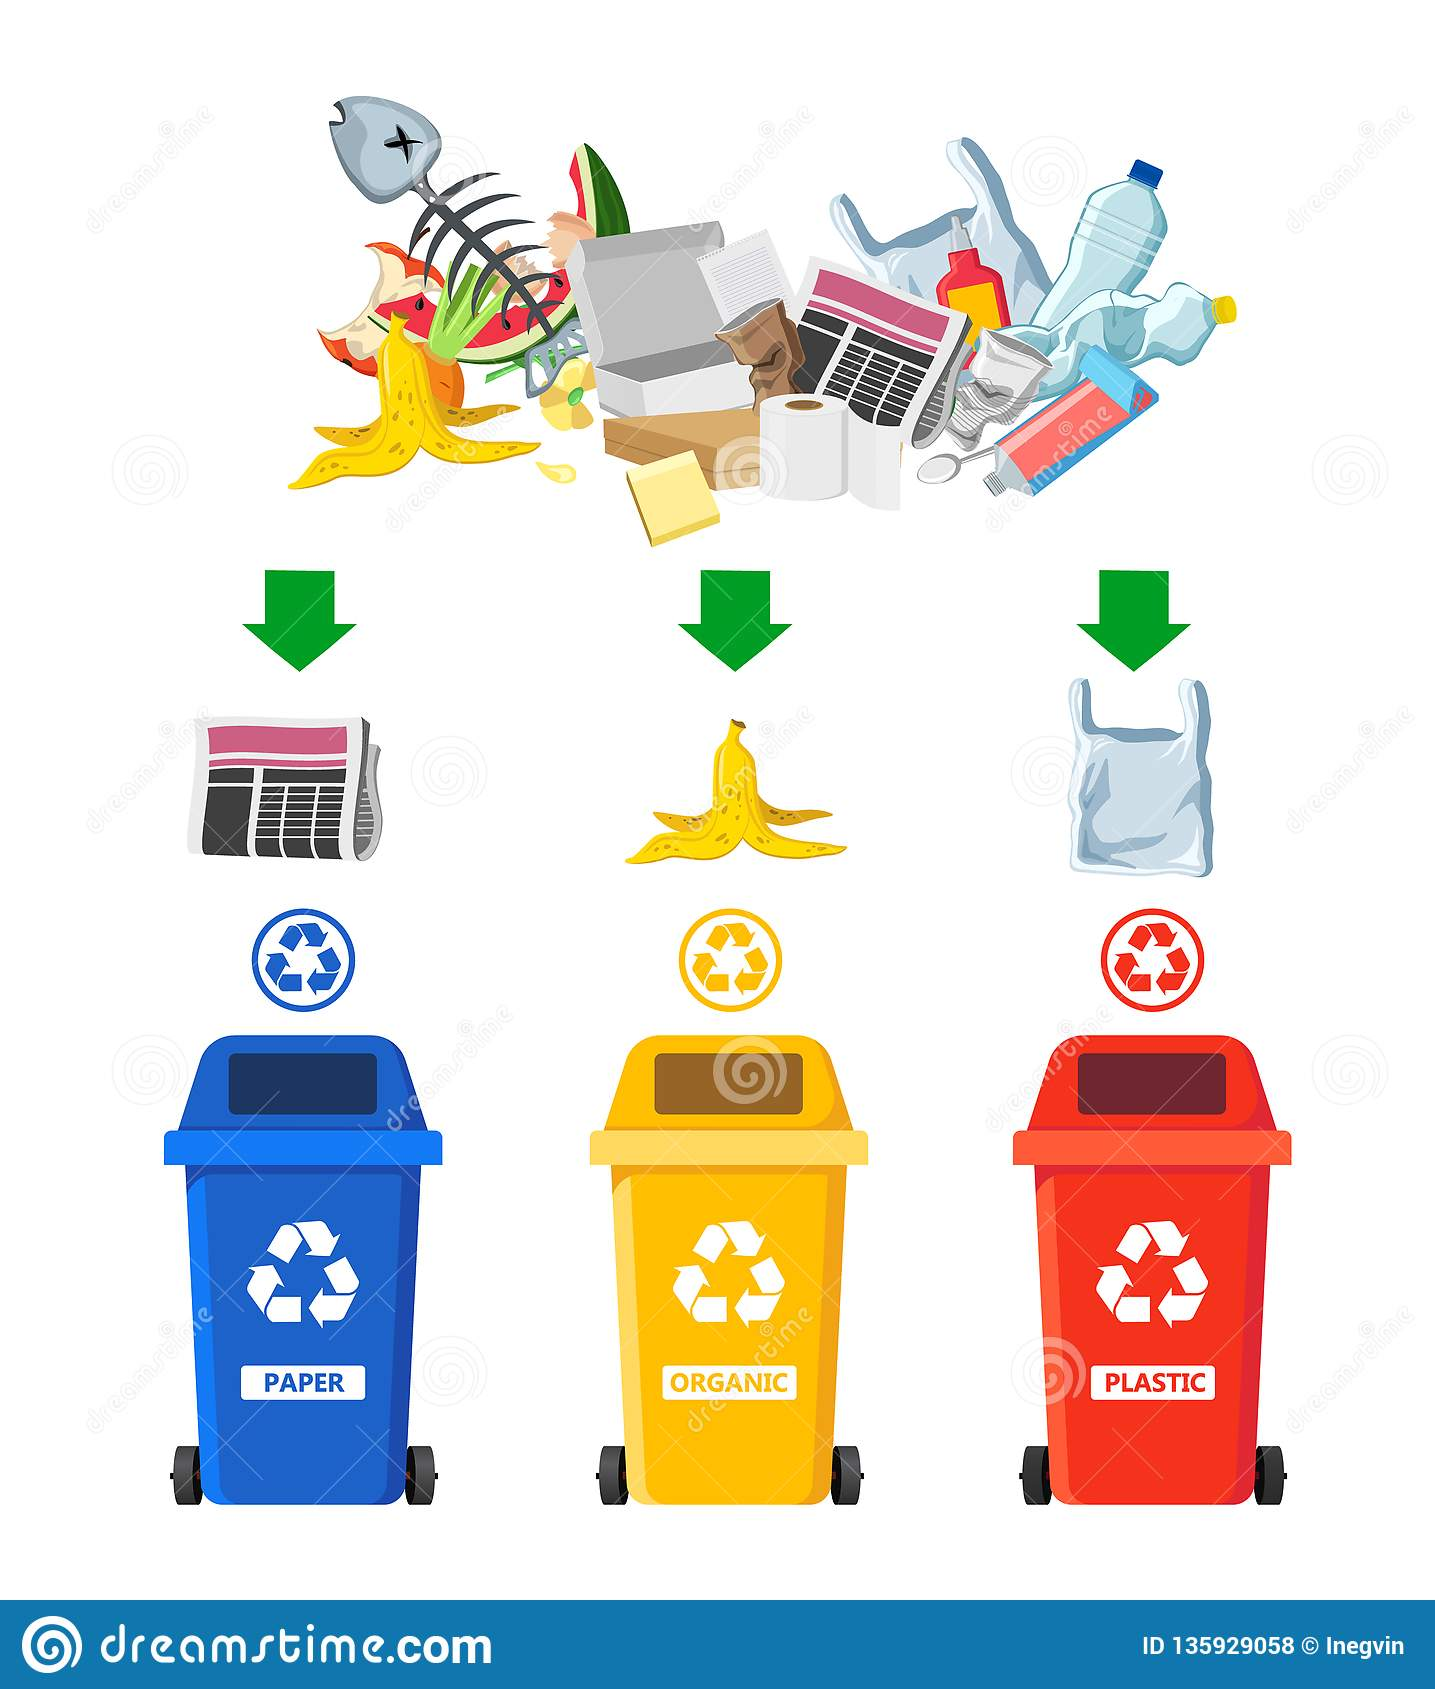 Rubbish Bins For Recycling Different Types Of Waste